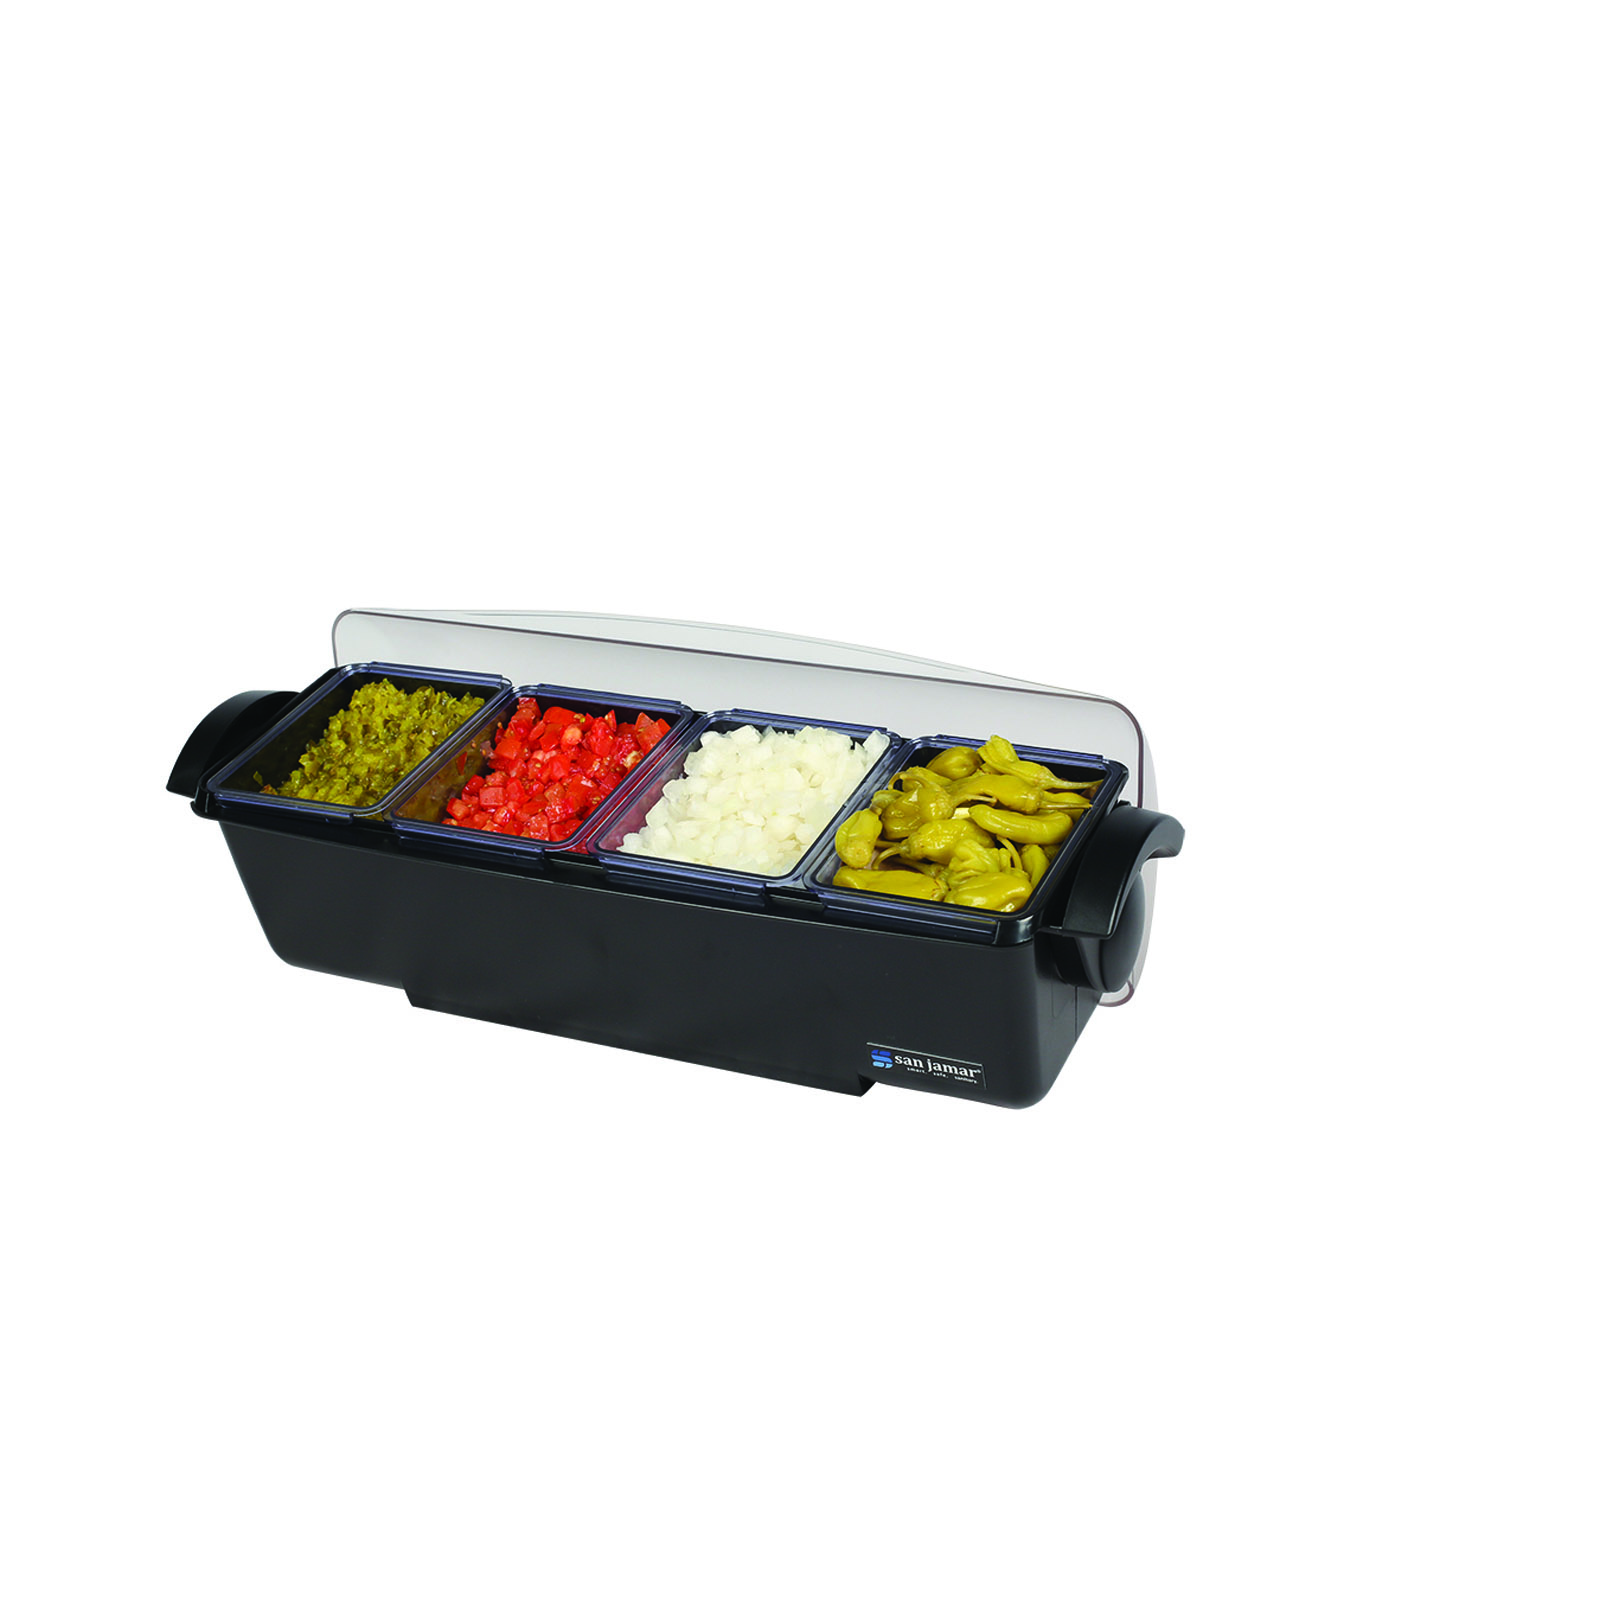 2150-04 San Jamar BD4004 bar condiment holder